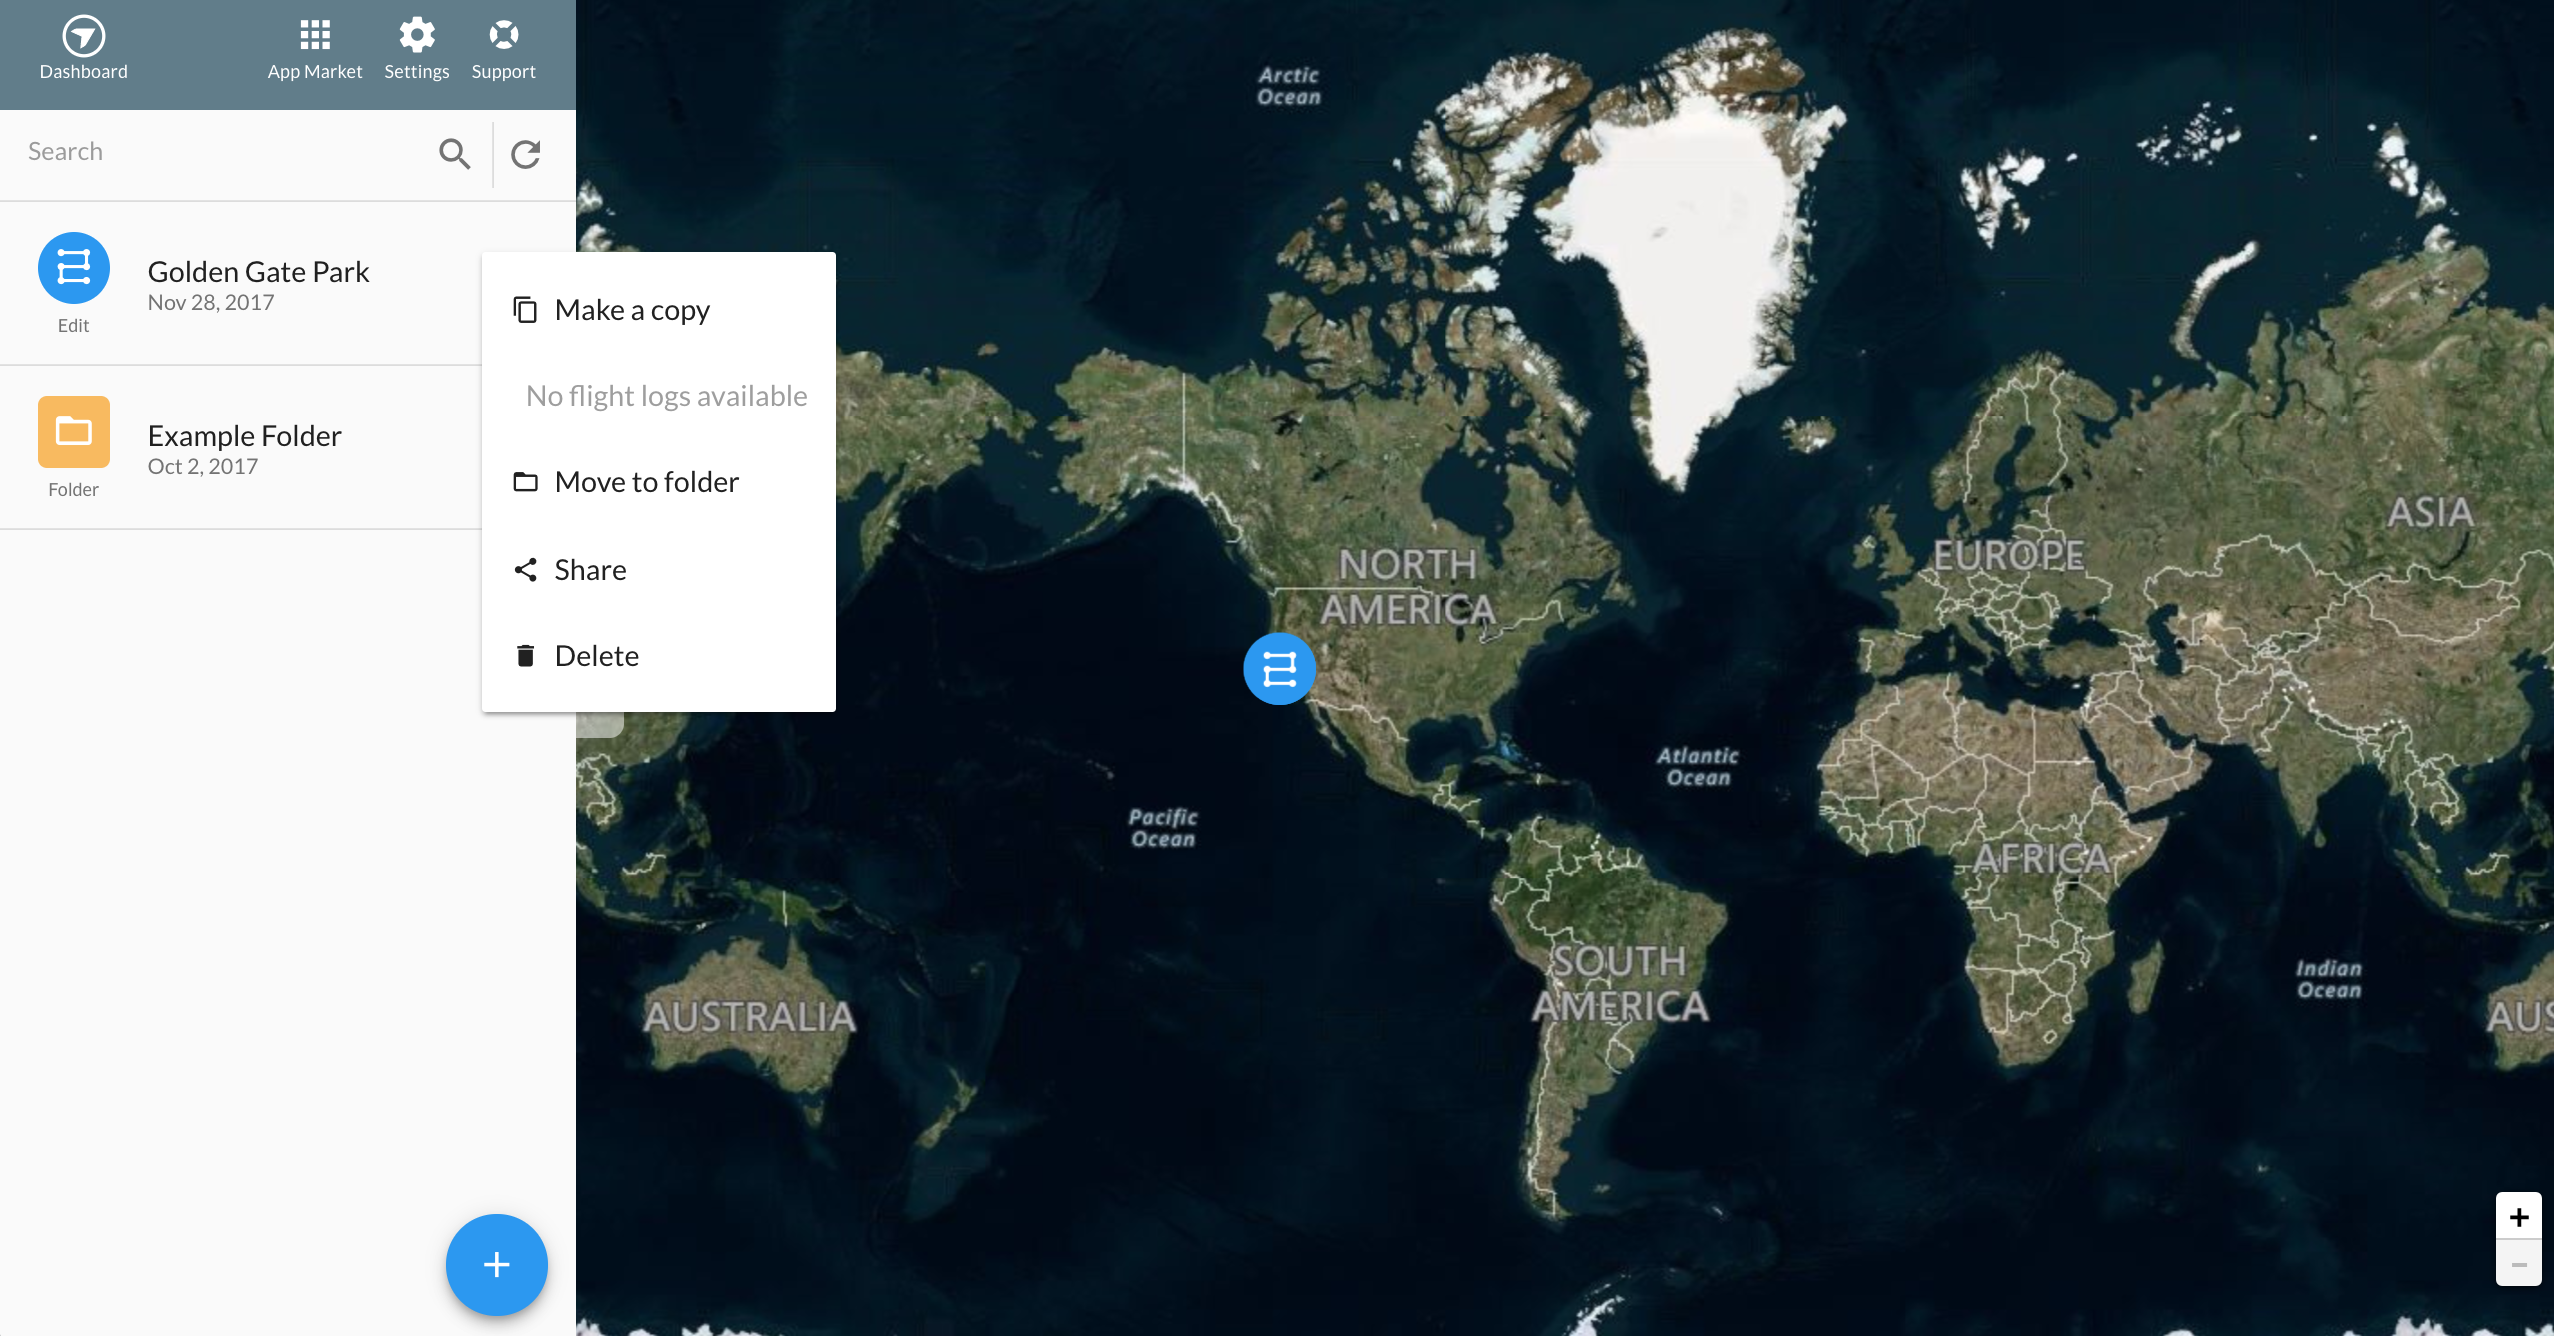 Planning flights on dronedeploy by clicking on the drop down to the right of the mission name you have to option to make a copy move to a folder share or delete the map gumiabroncs Image collections